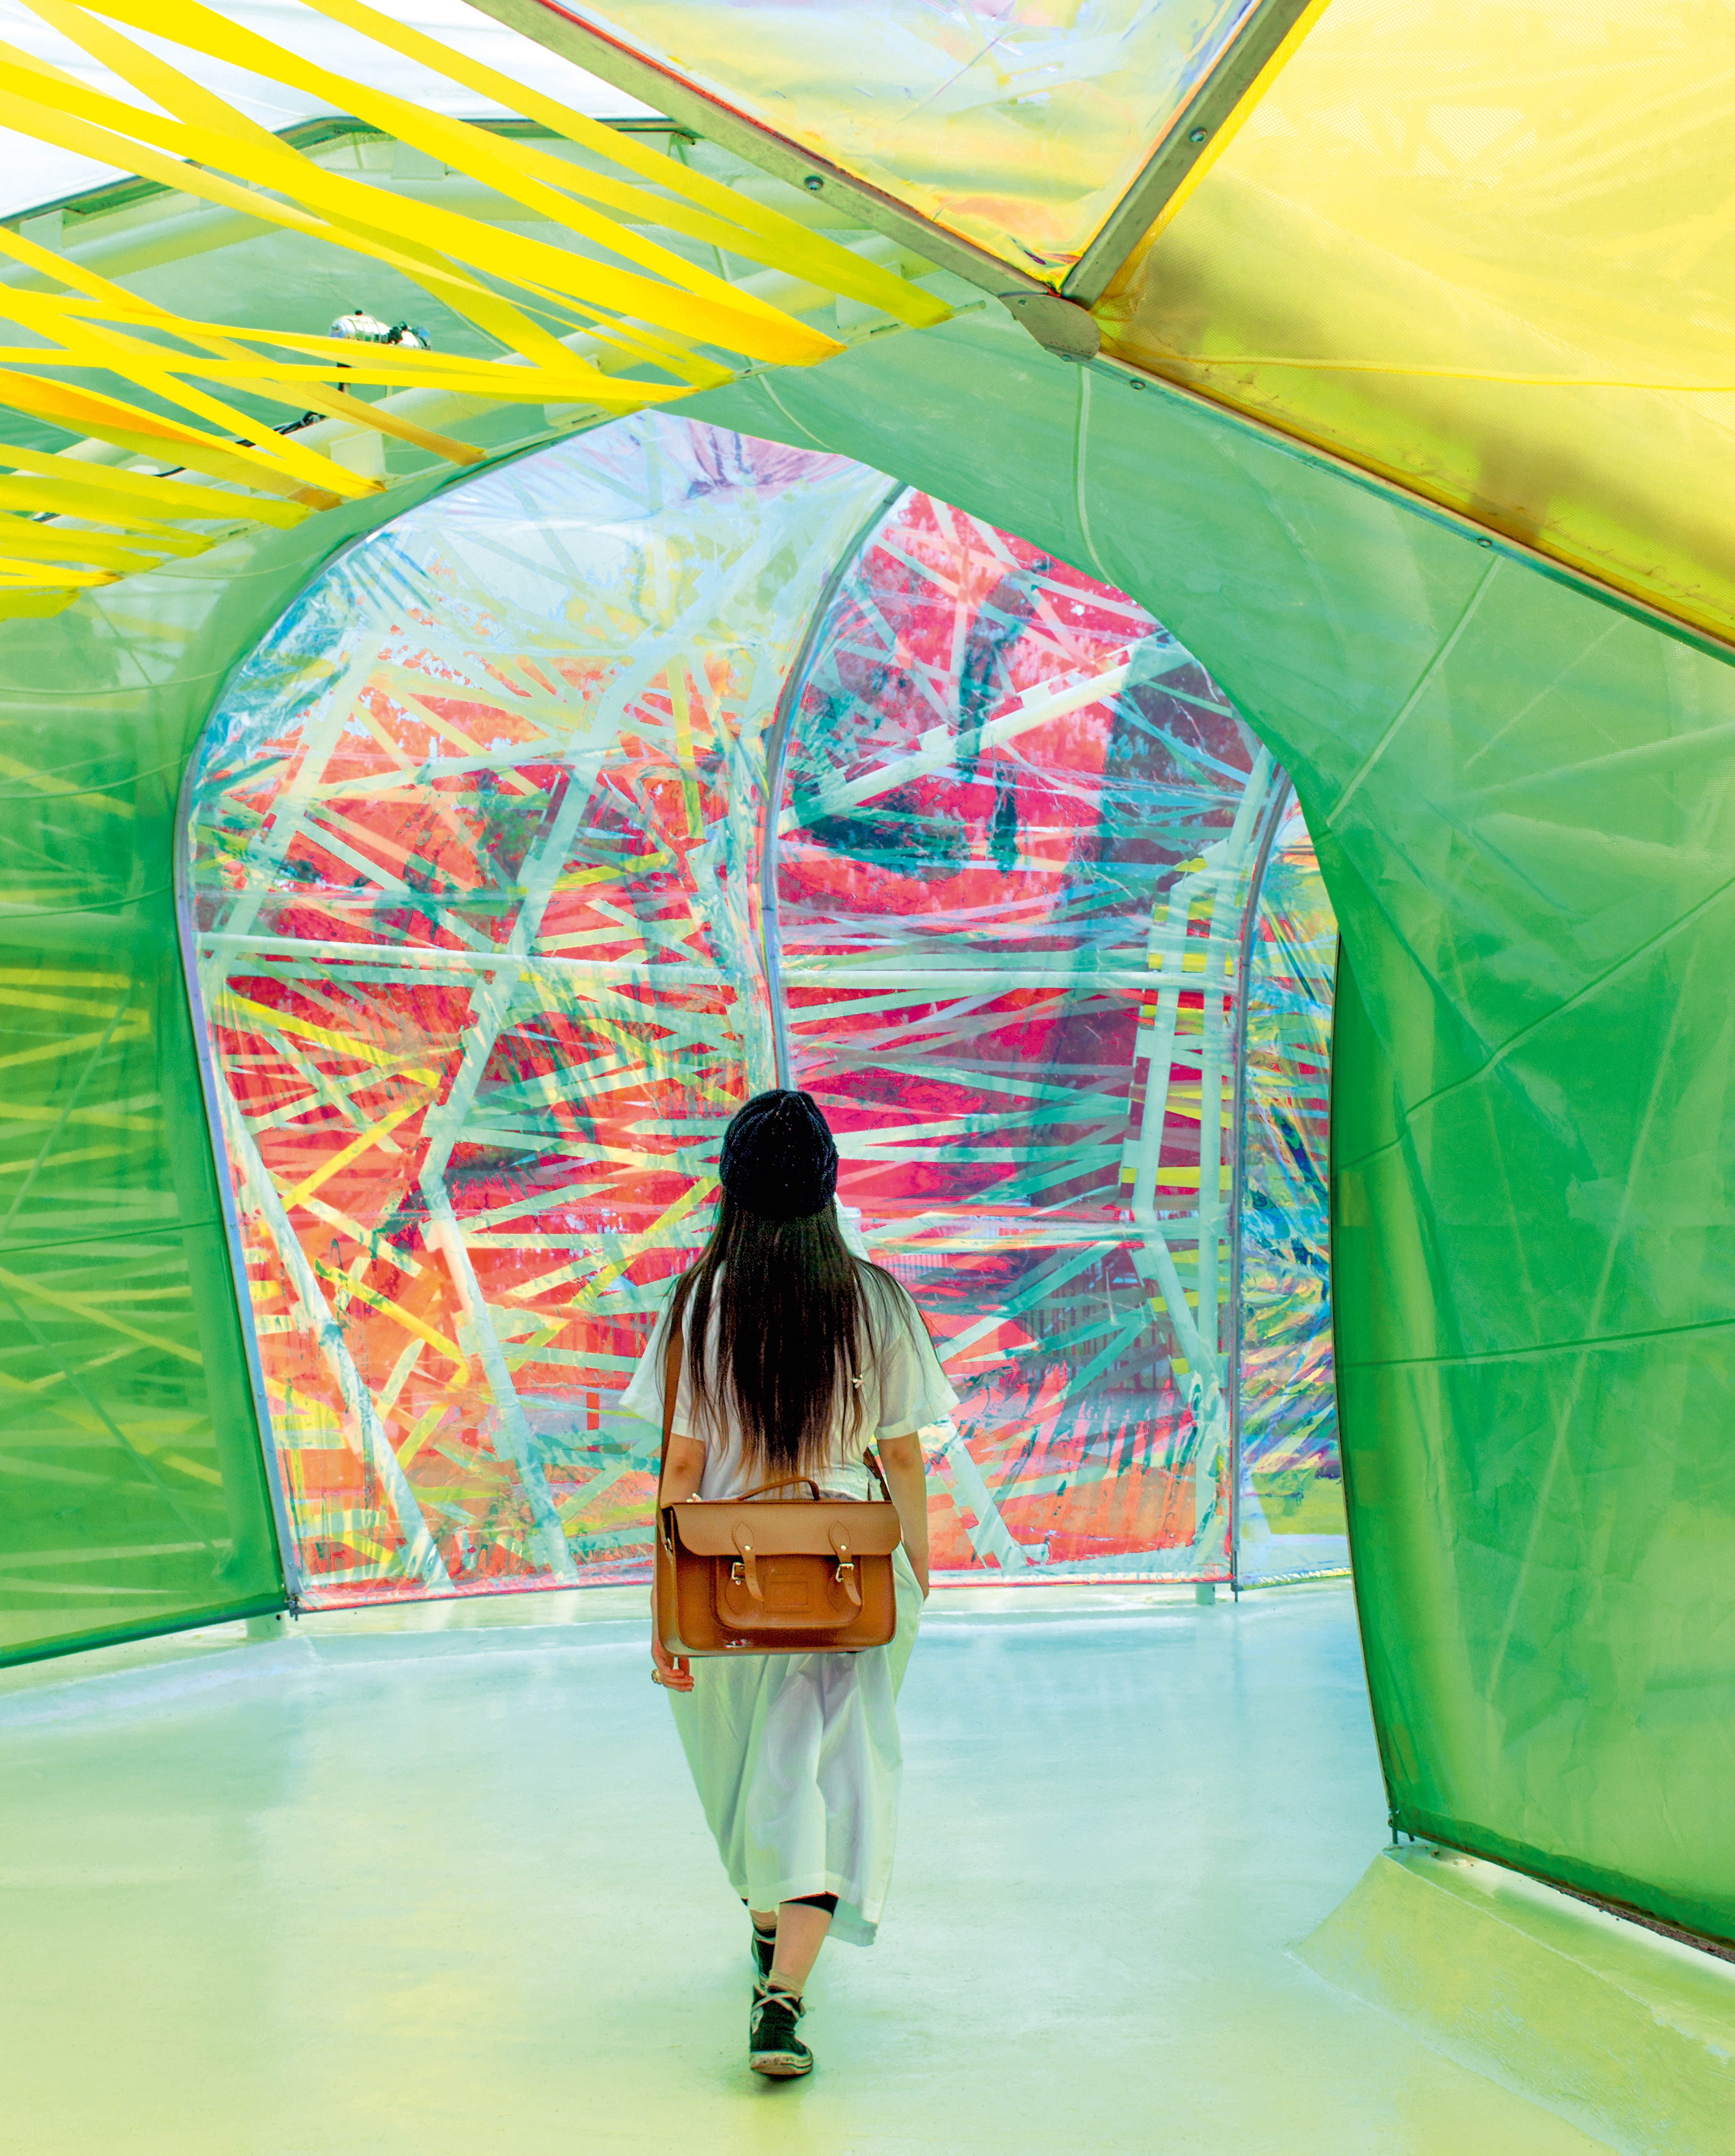 Summer Pavilion for the Serpentine Gallery Selgascano